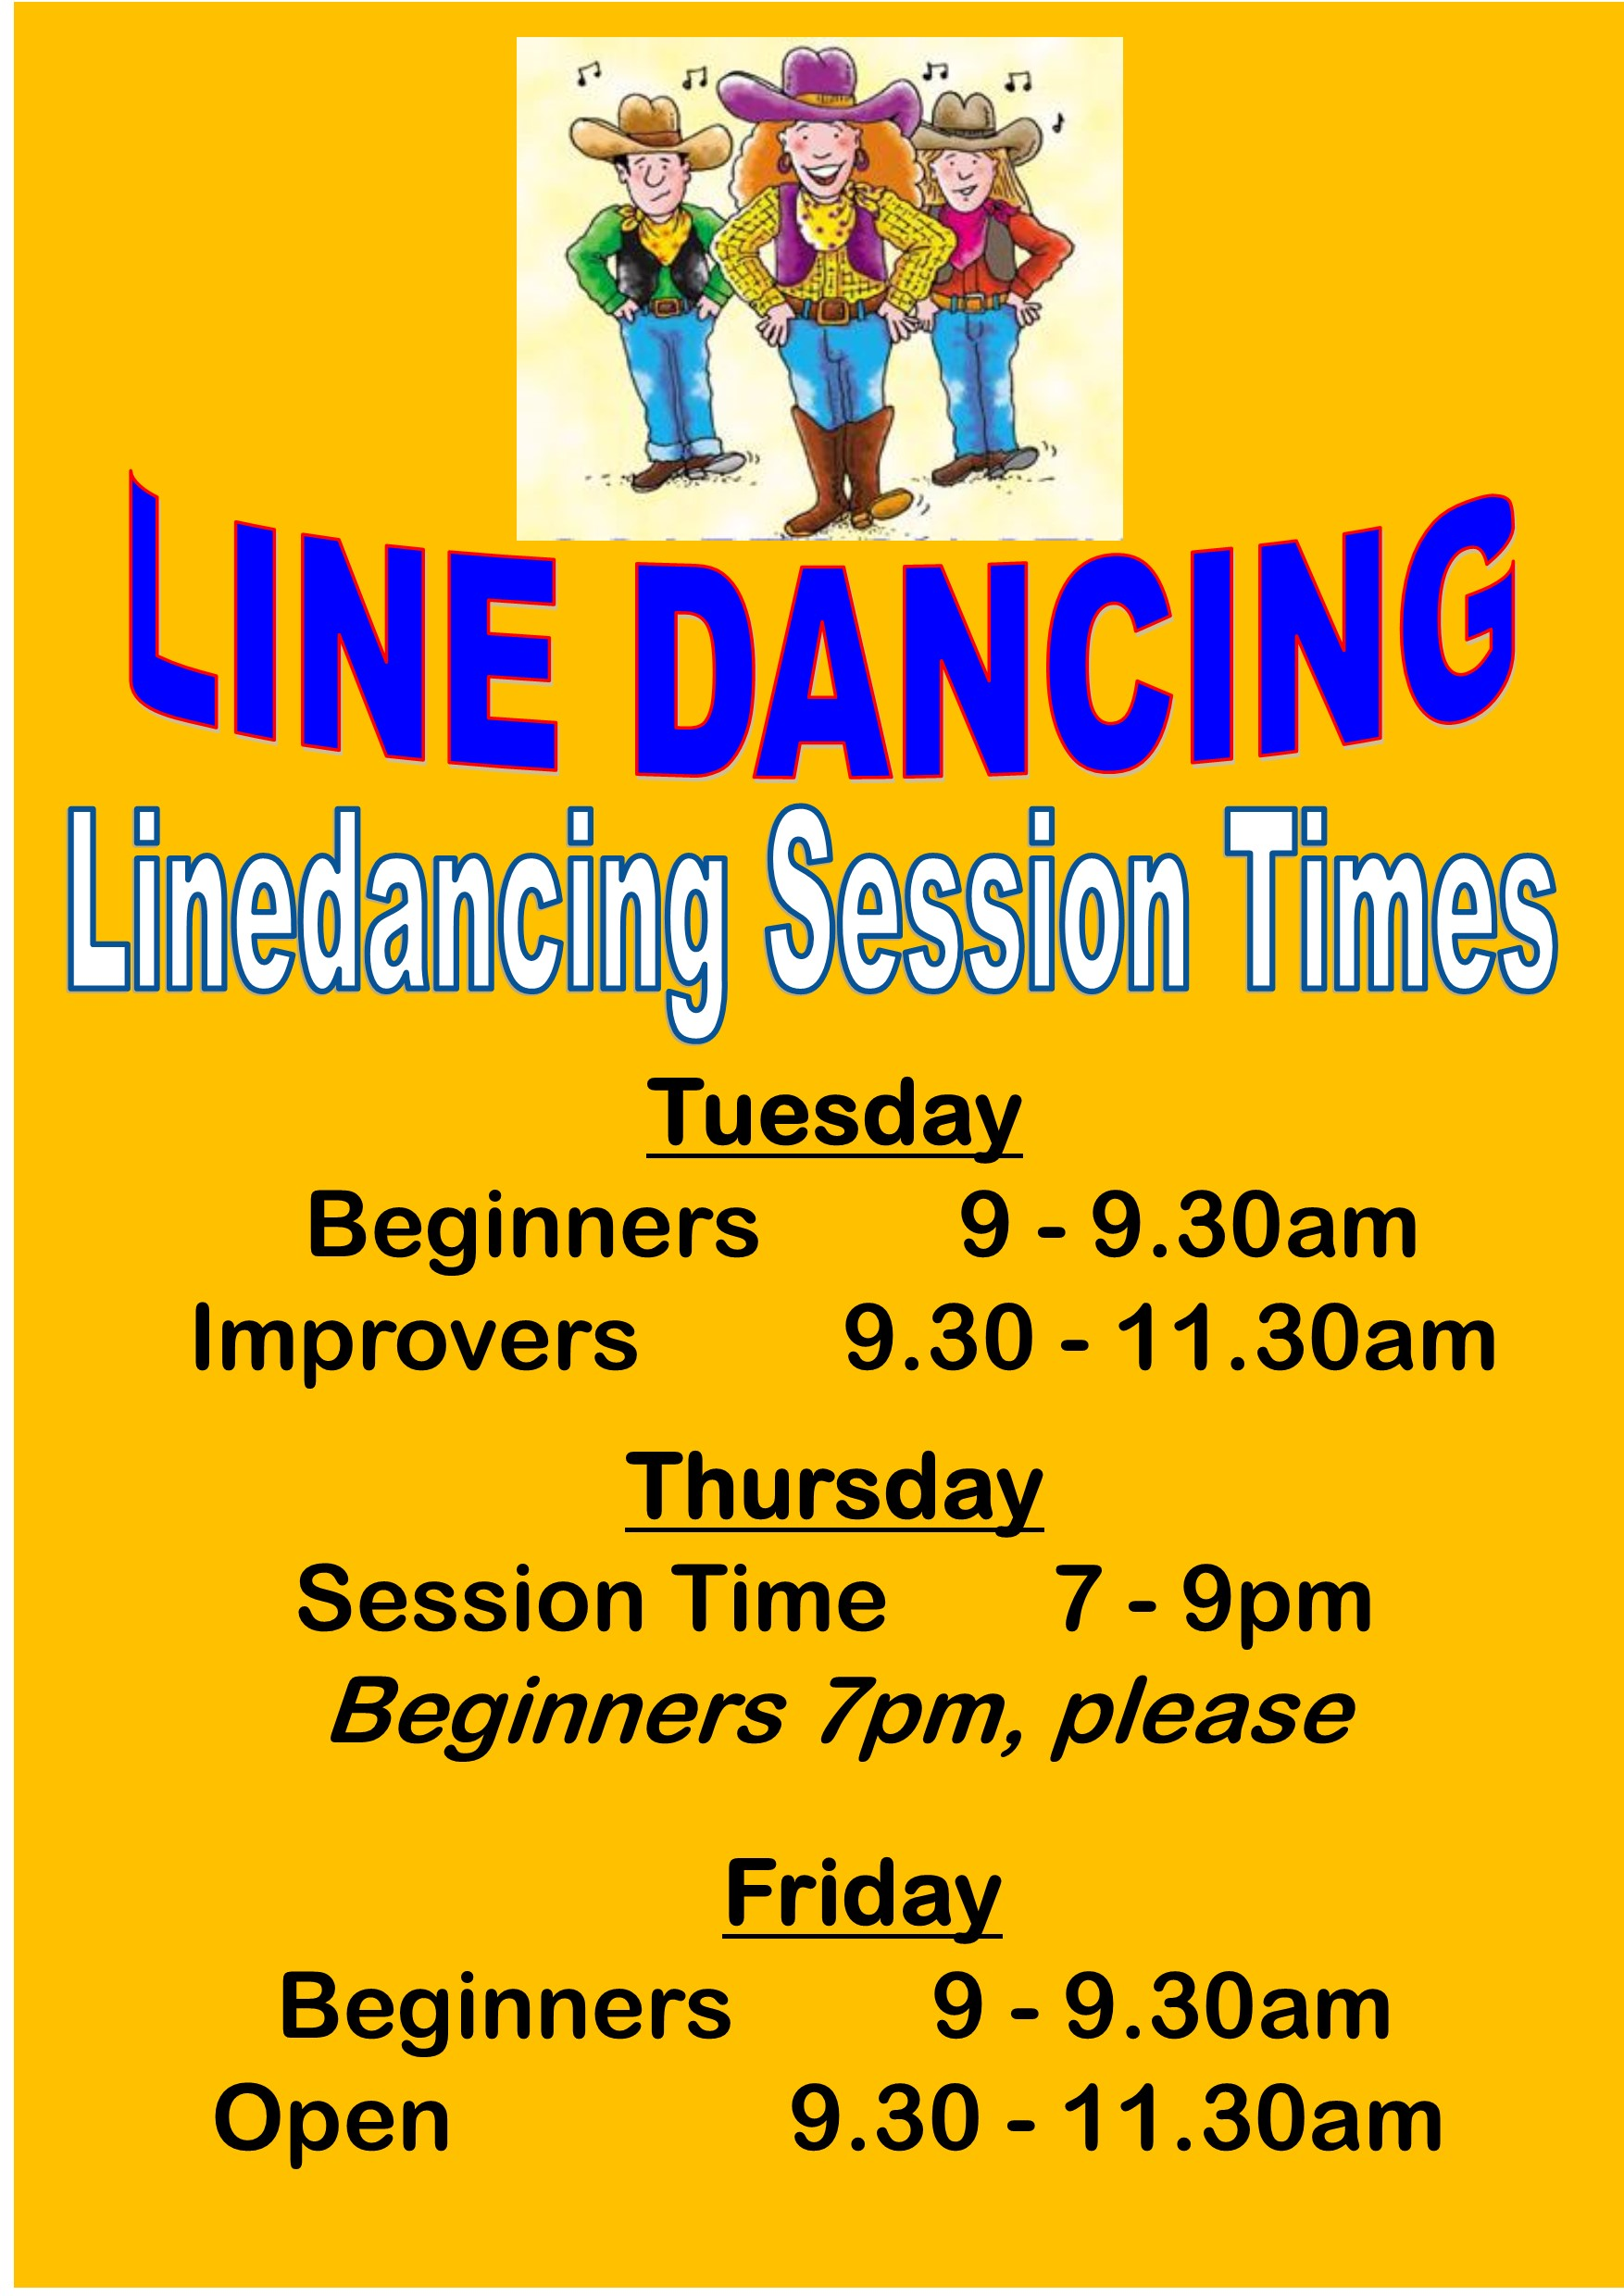 Linedancing Session Times